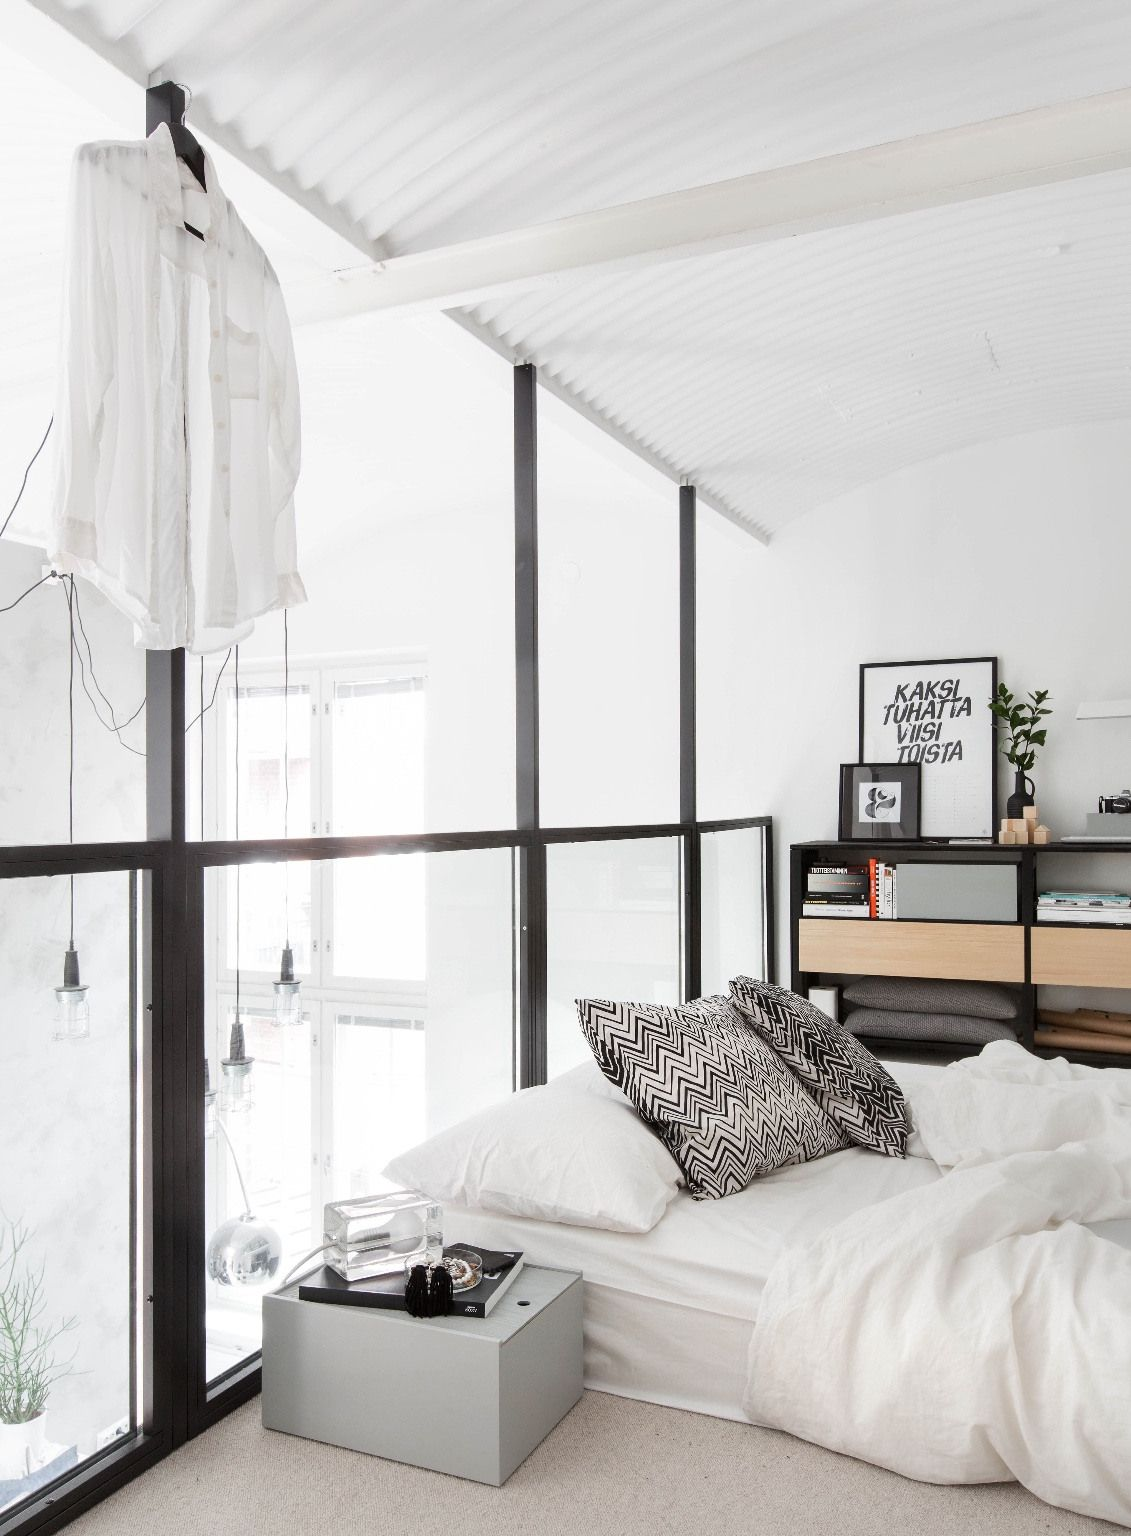 Loft bedroom with bathroom  Pin by evelyne JAMART on Meuble et décoration  Pinterest  Lofts